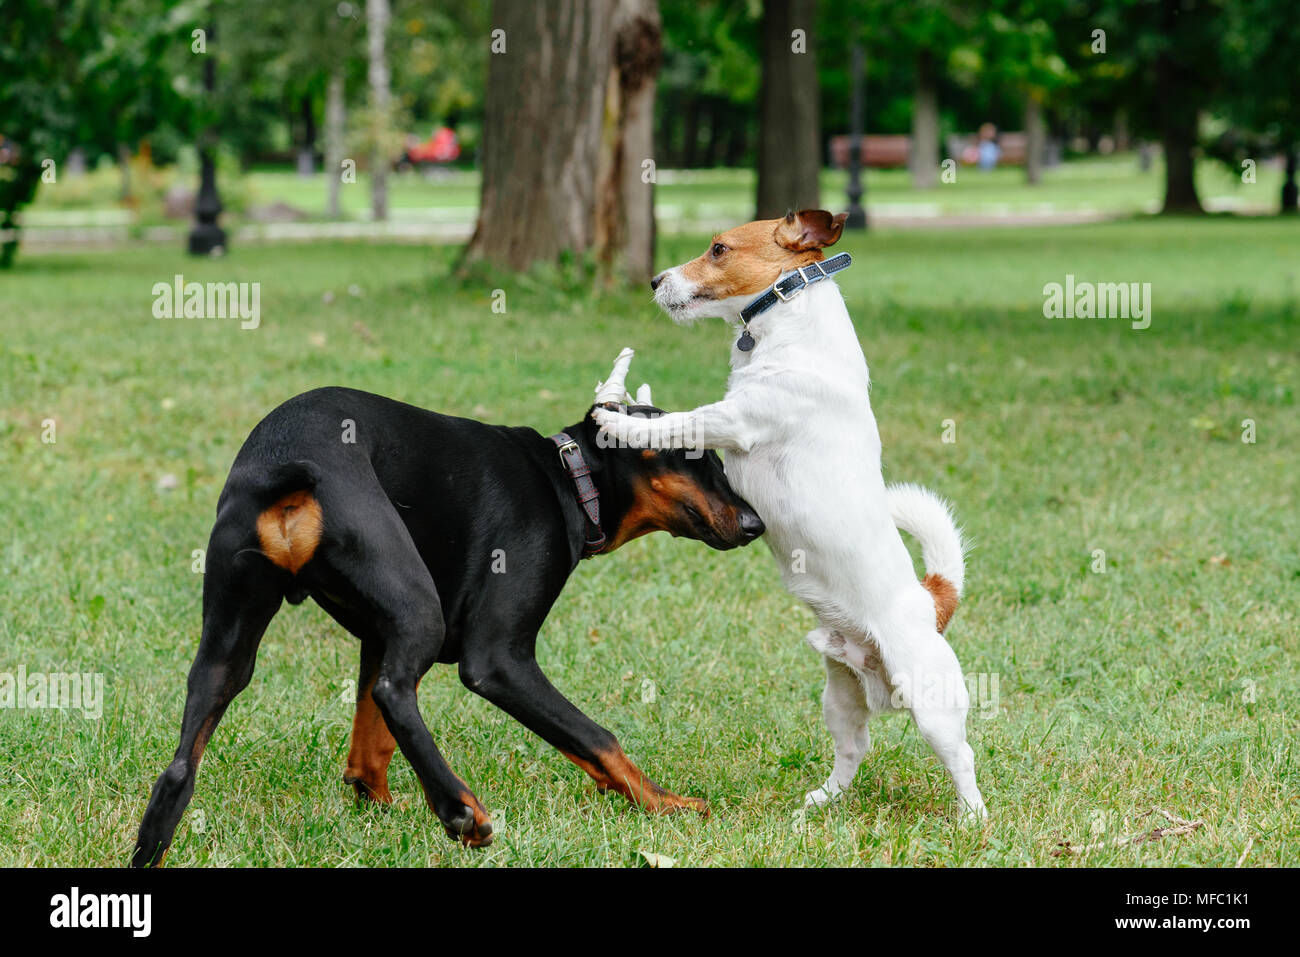 Jack Russell Terrier dog playing with playful Doberman Pinscher puppy at park - Stock Image